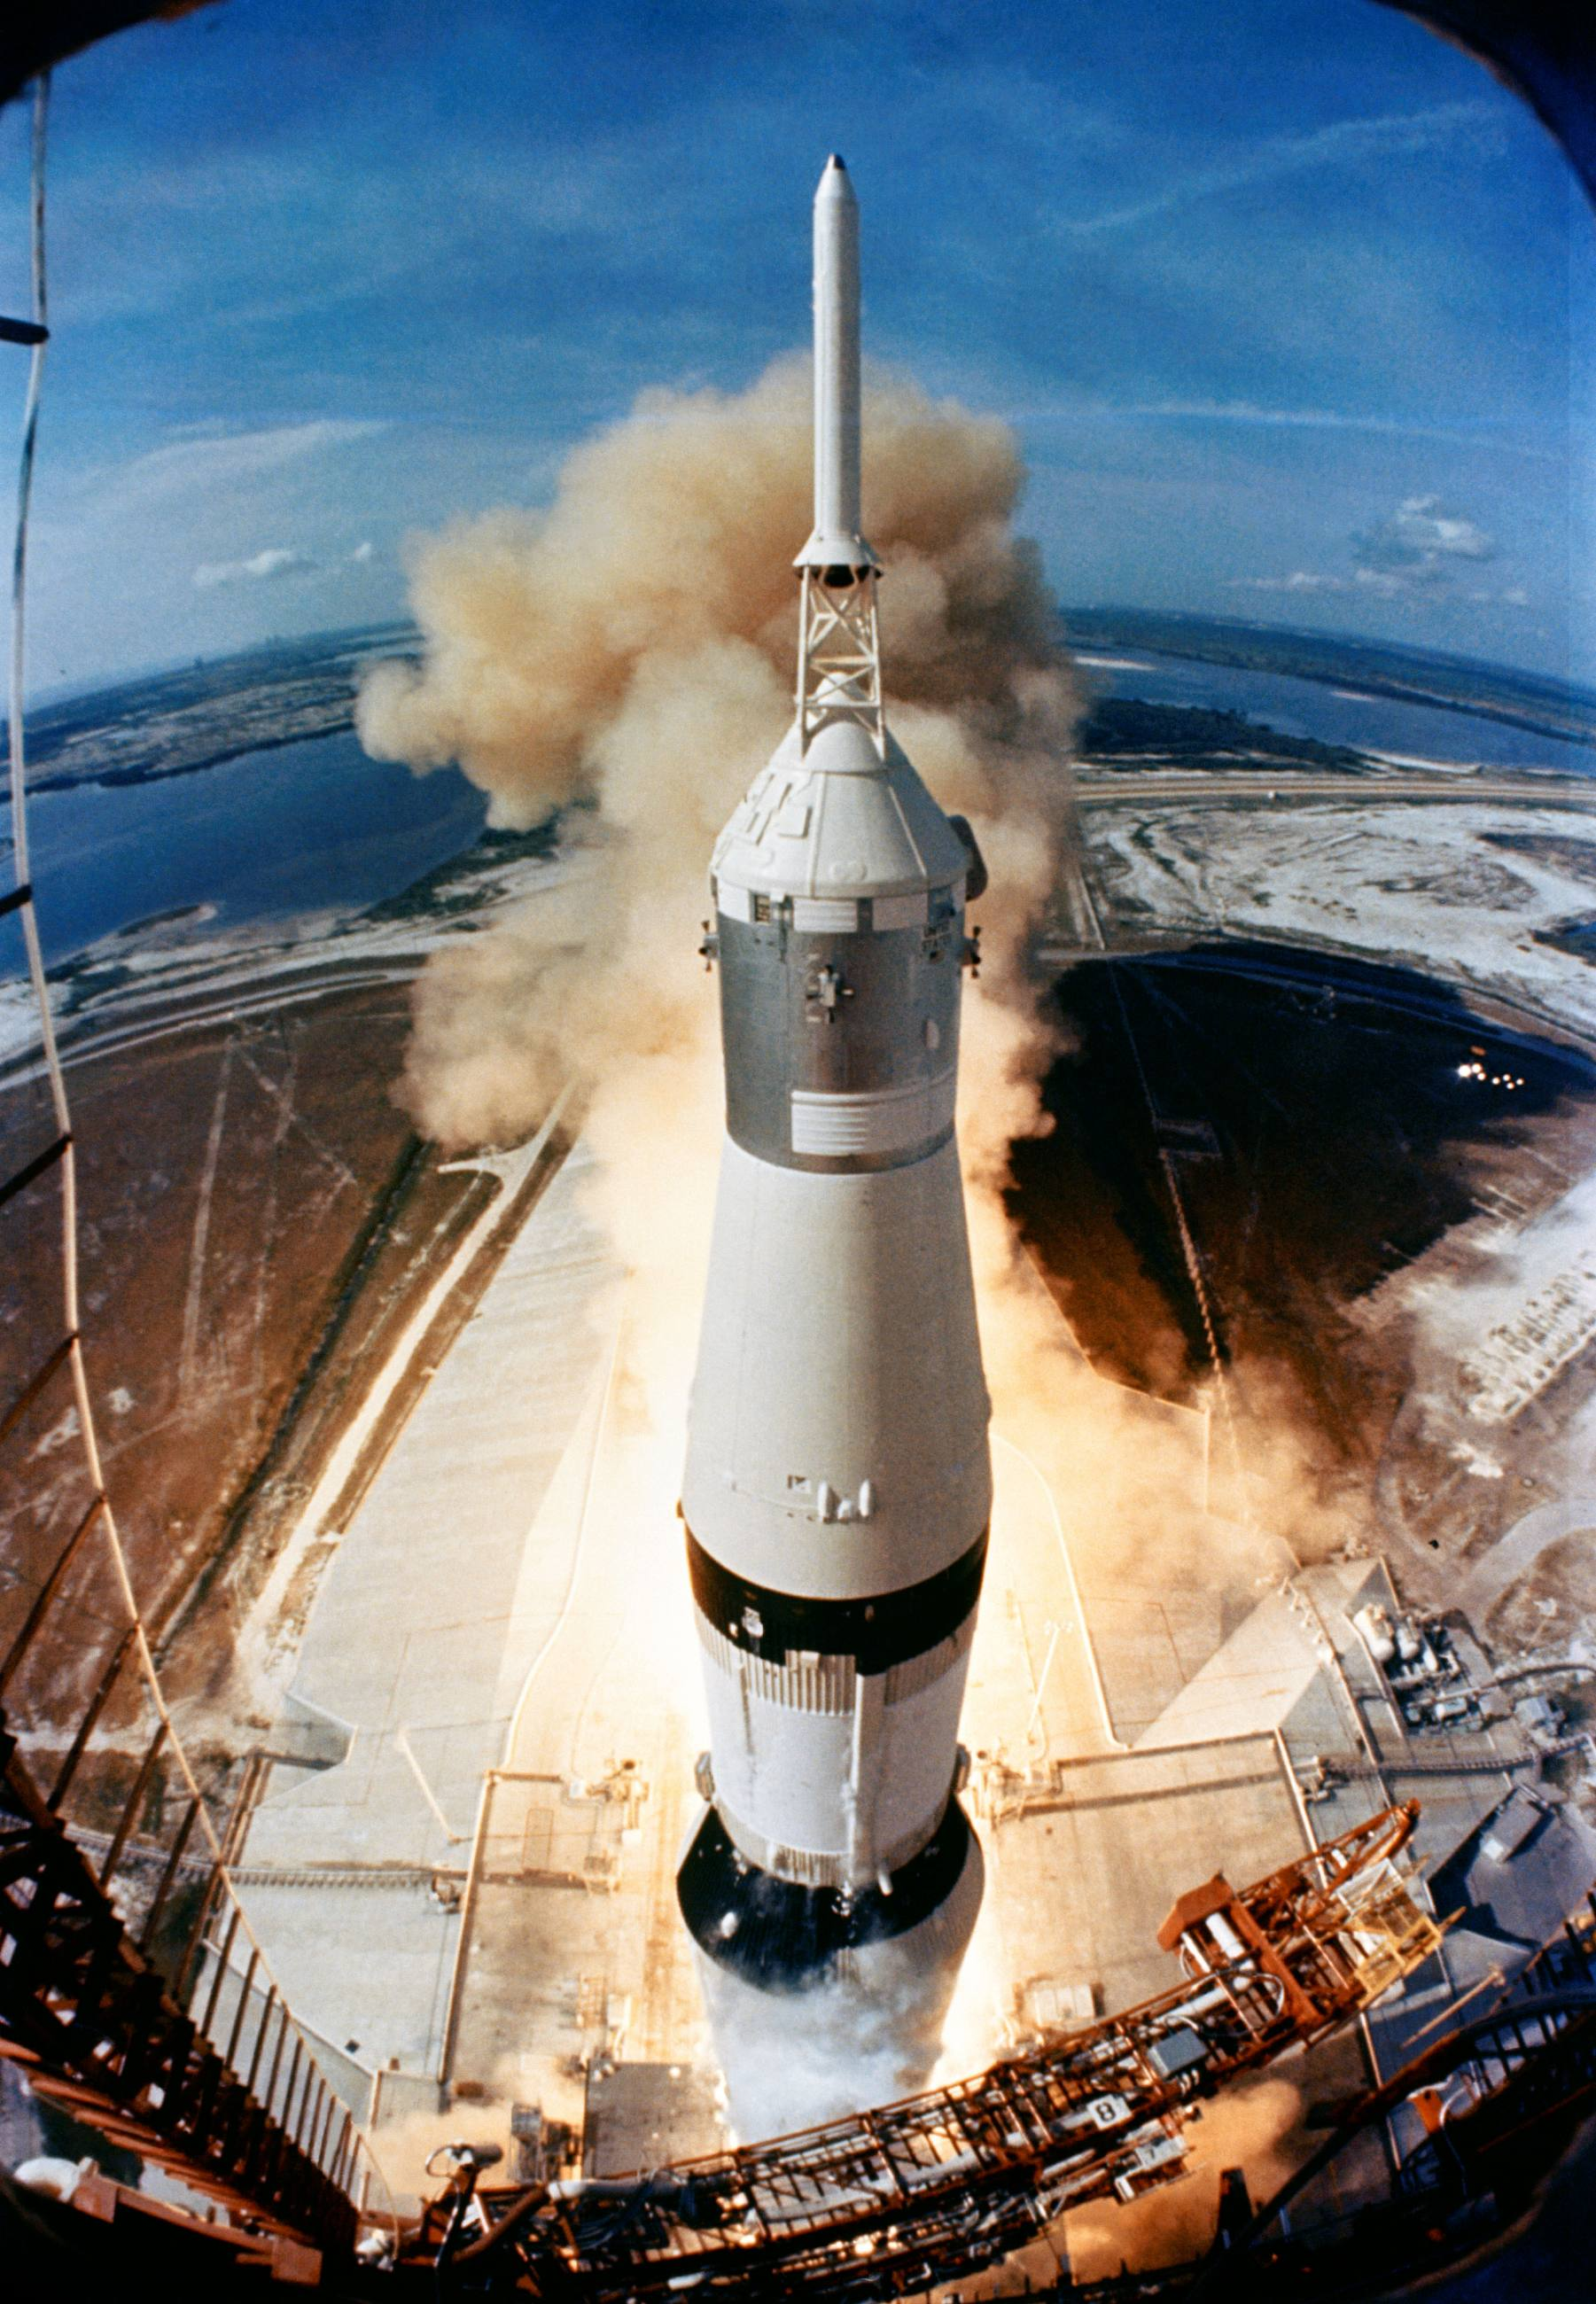 Saturn V rocket launches on the Apollo 11 mission on July 16, 1969